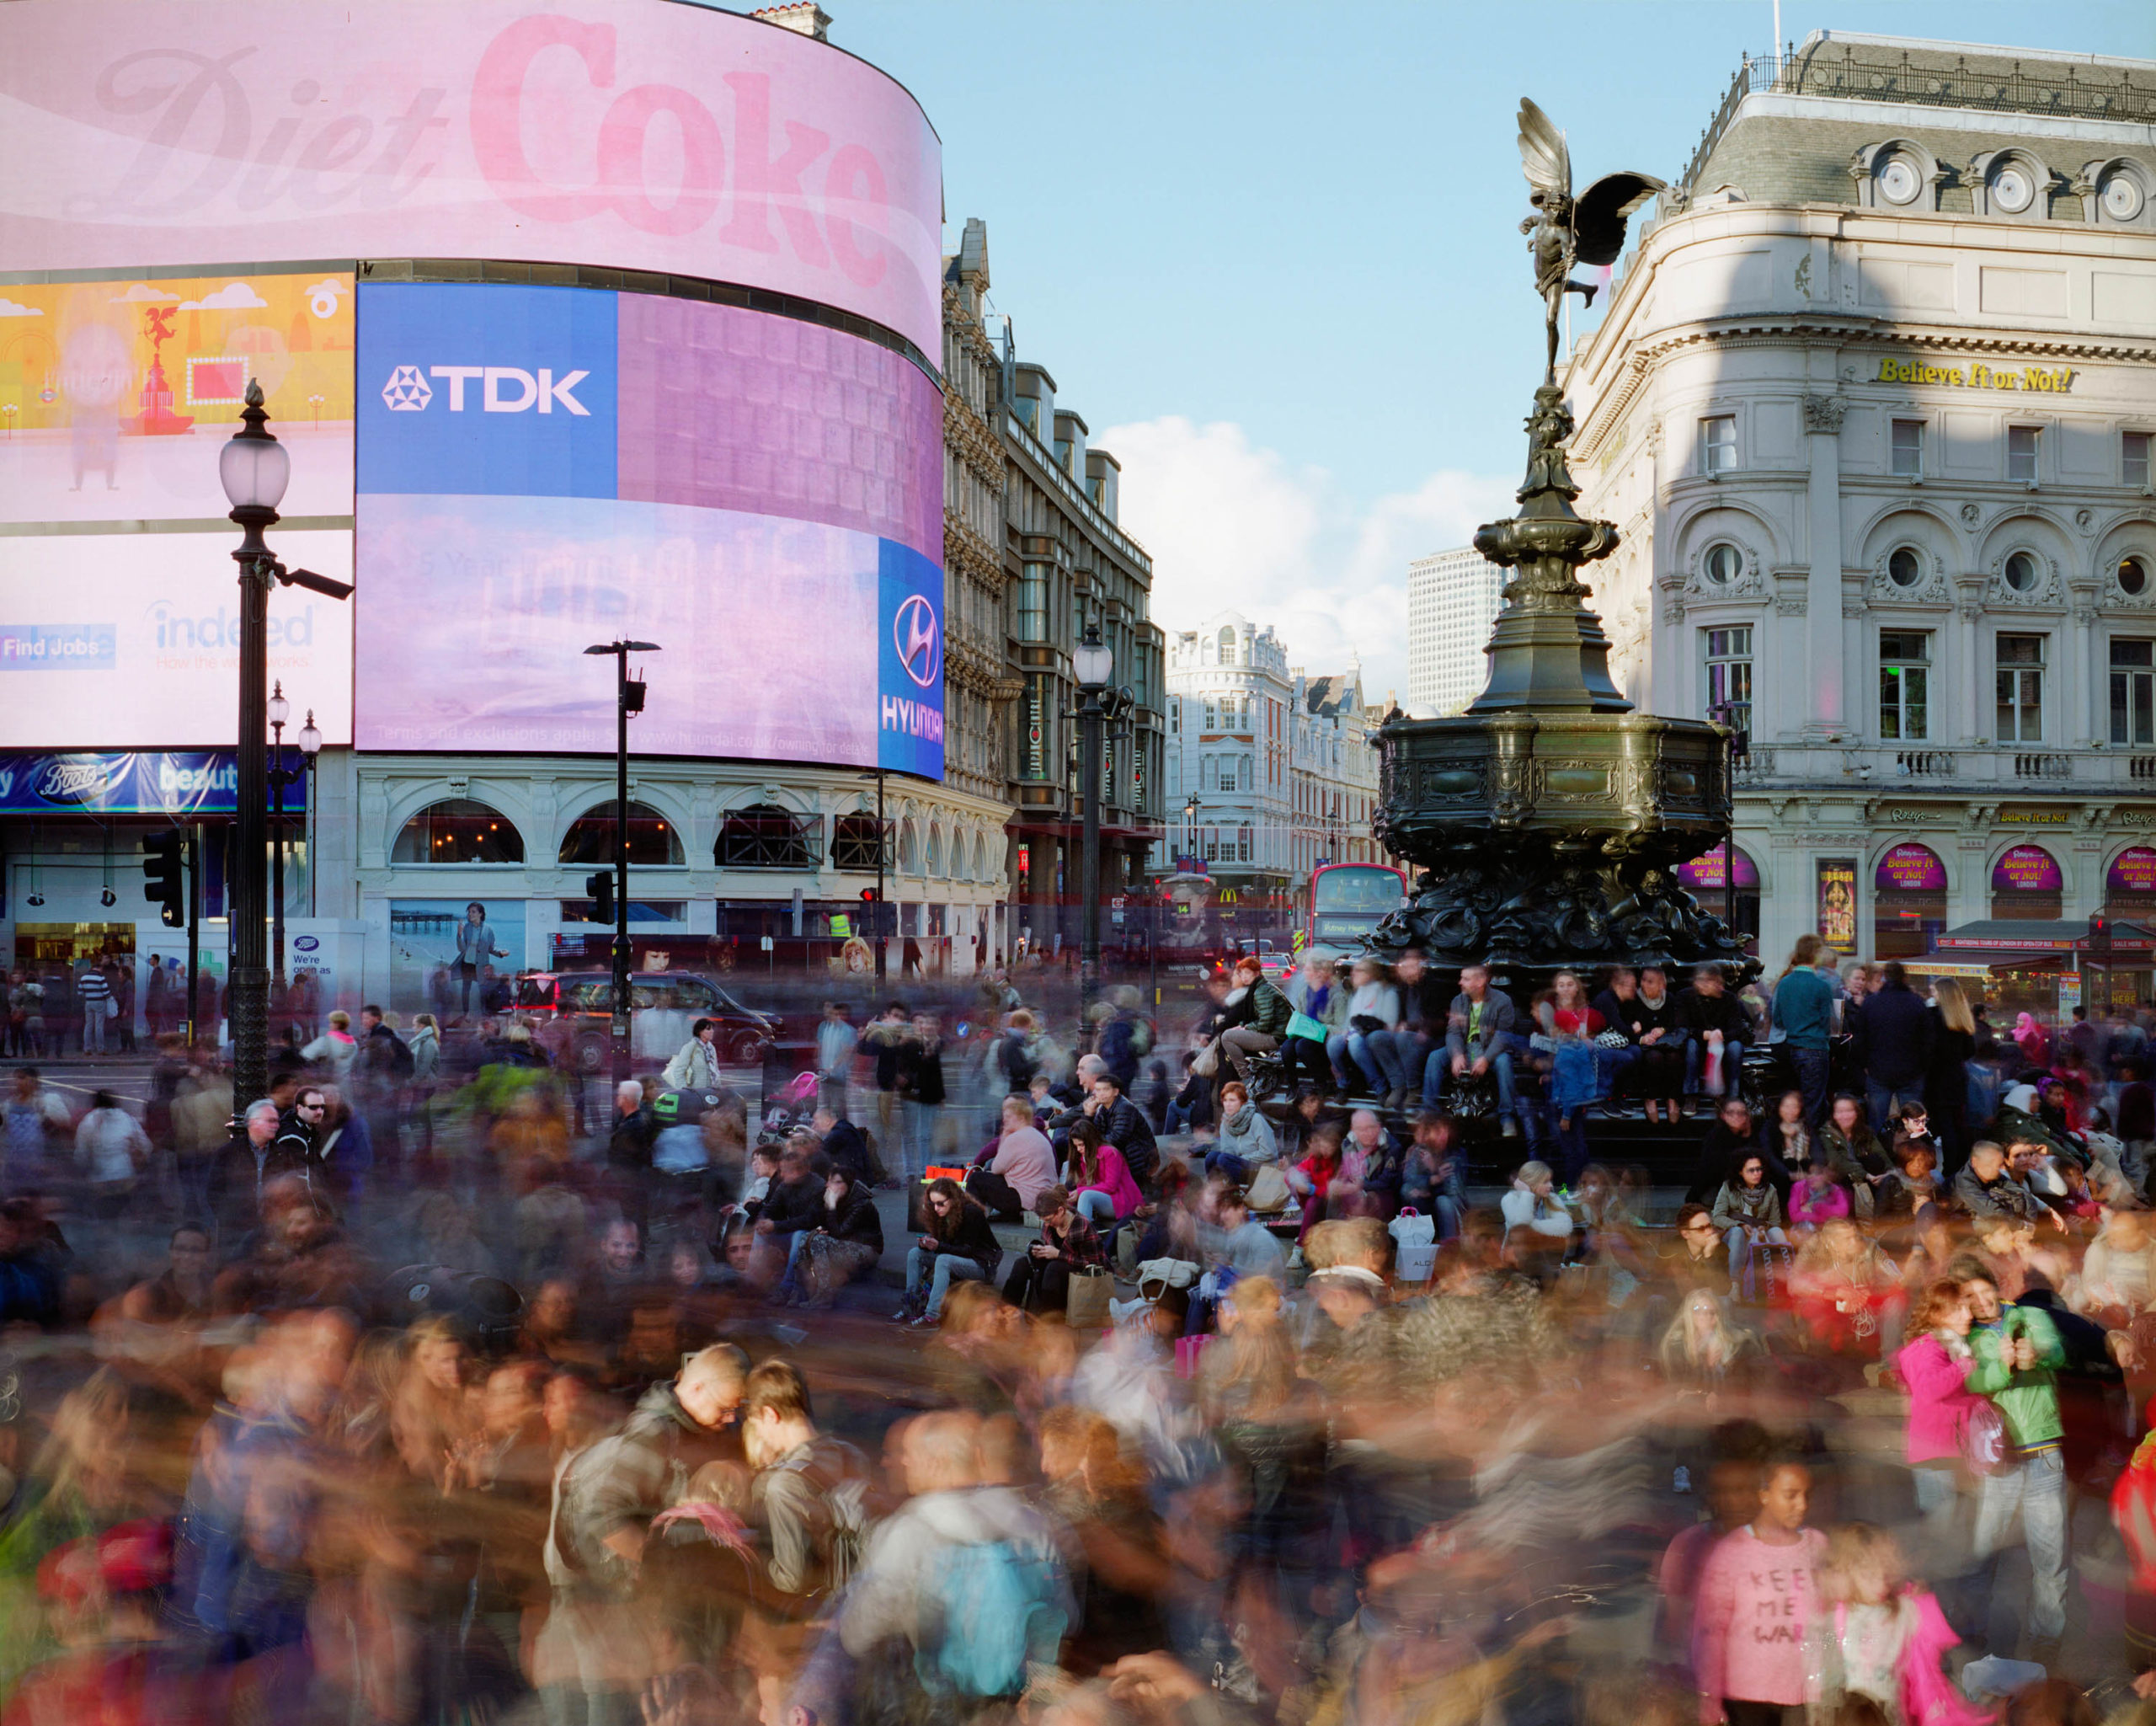 Piccadilly Circus, City of Westminster, London, United Kingdom